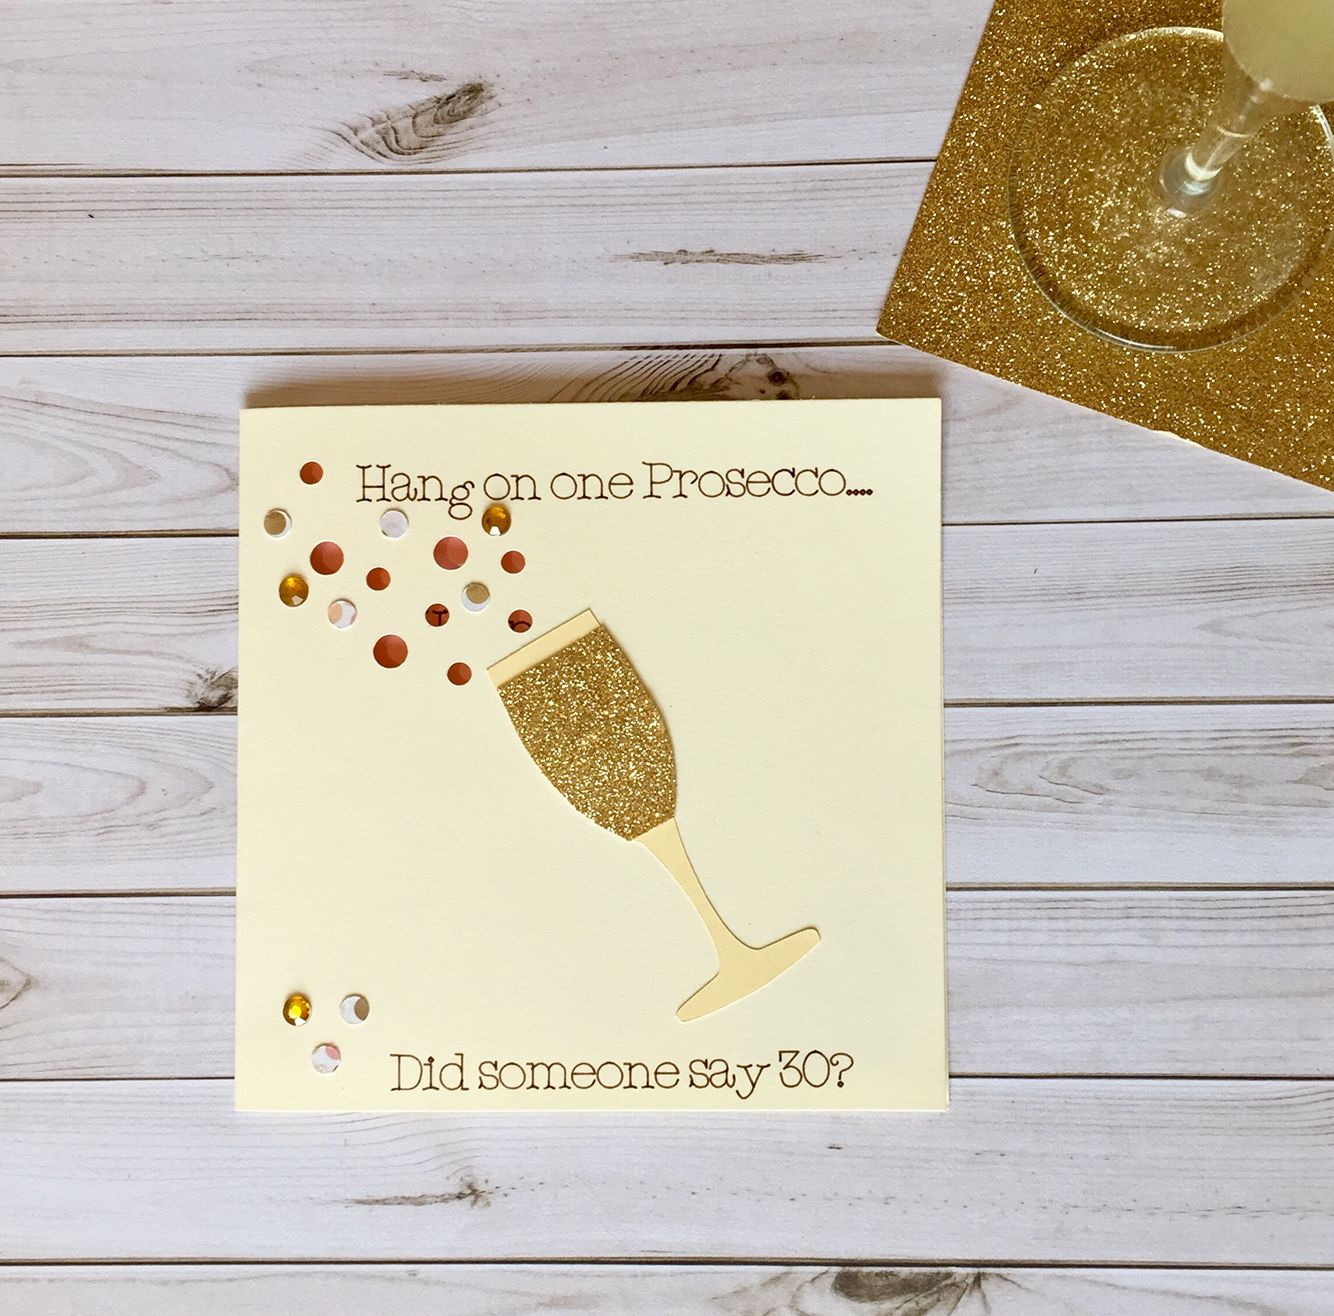 Prosecco card hang on one prosecco prosecco birthday card prosecco card hang on one prosecco prosecco birthday card prosecco engagement card handmade kristyandbryce Images